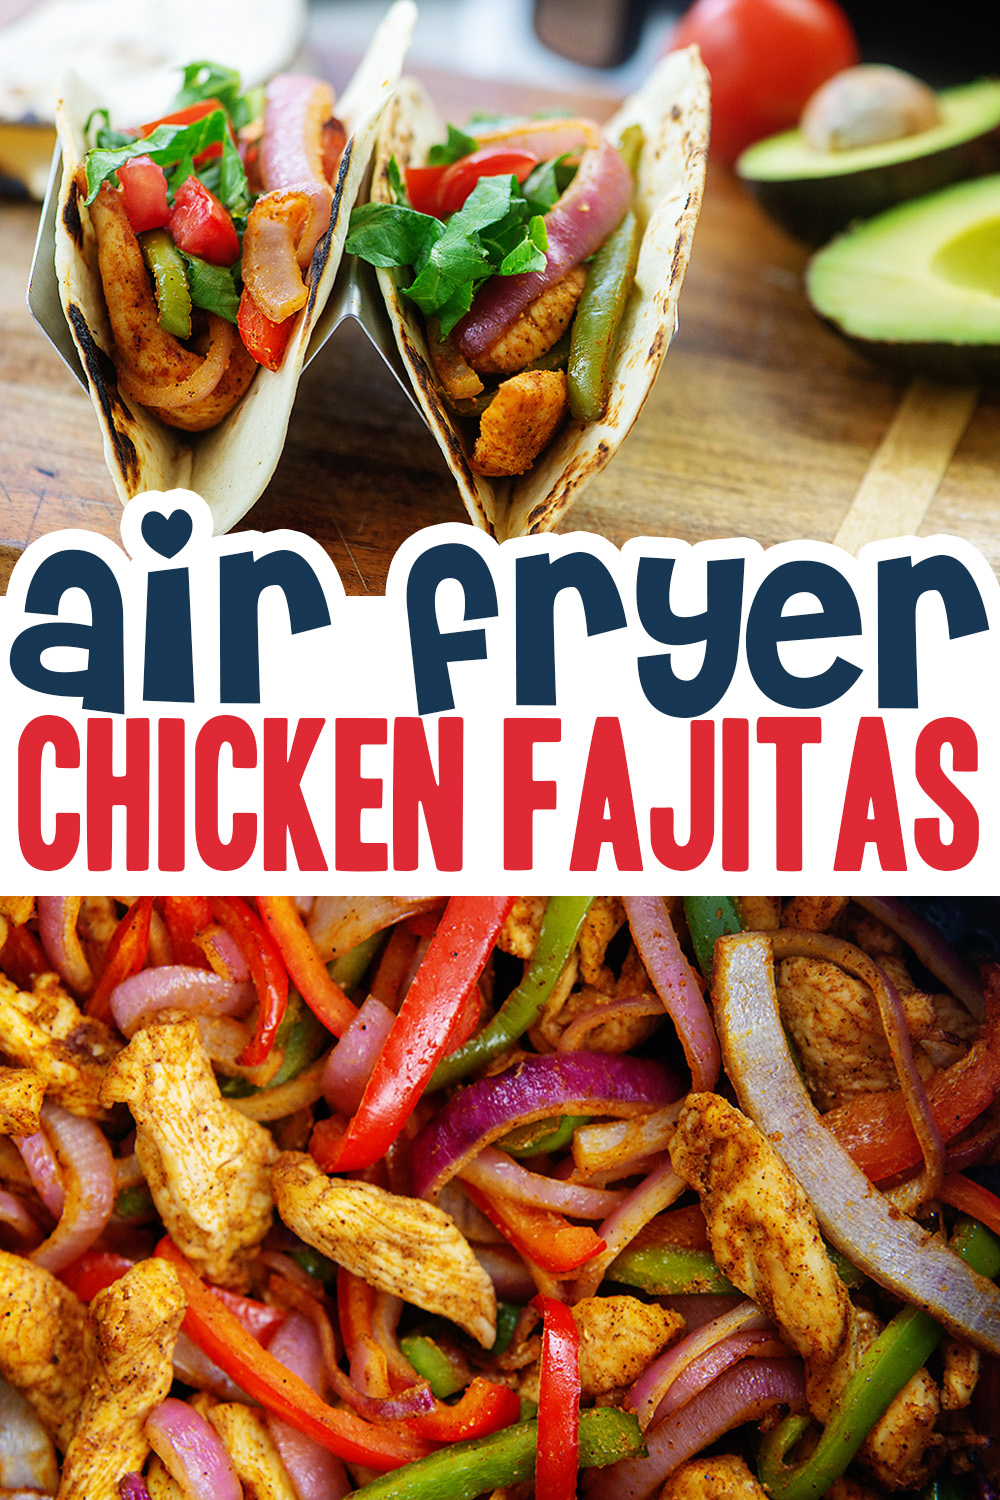 This 15 minute chicken fajita recipe is cooked entirely in the air fryer.  That makes this recipe both easy and delicious.